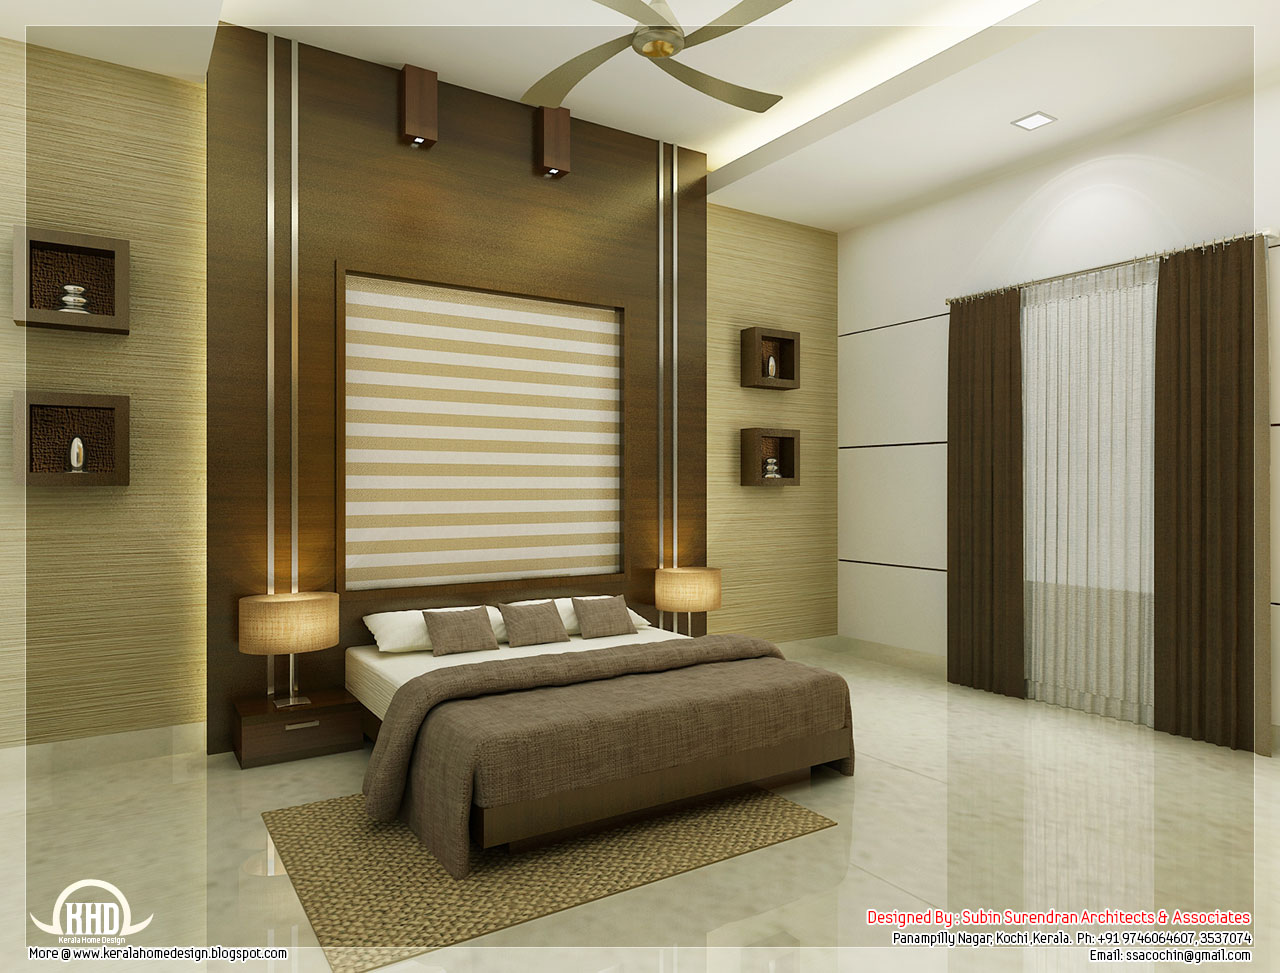 Beautiful bedroom interior designs kerala home design for Bed room interior design images